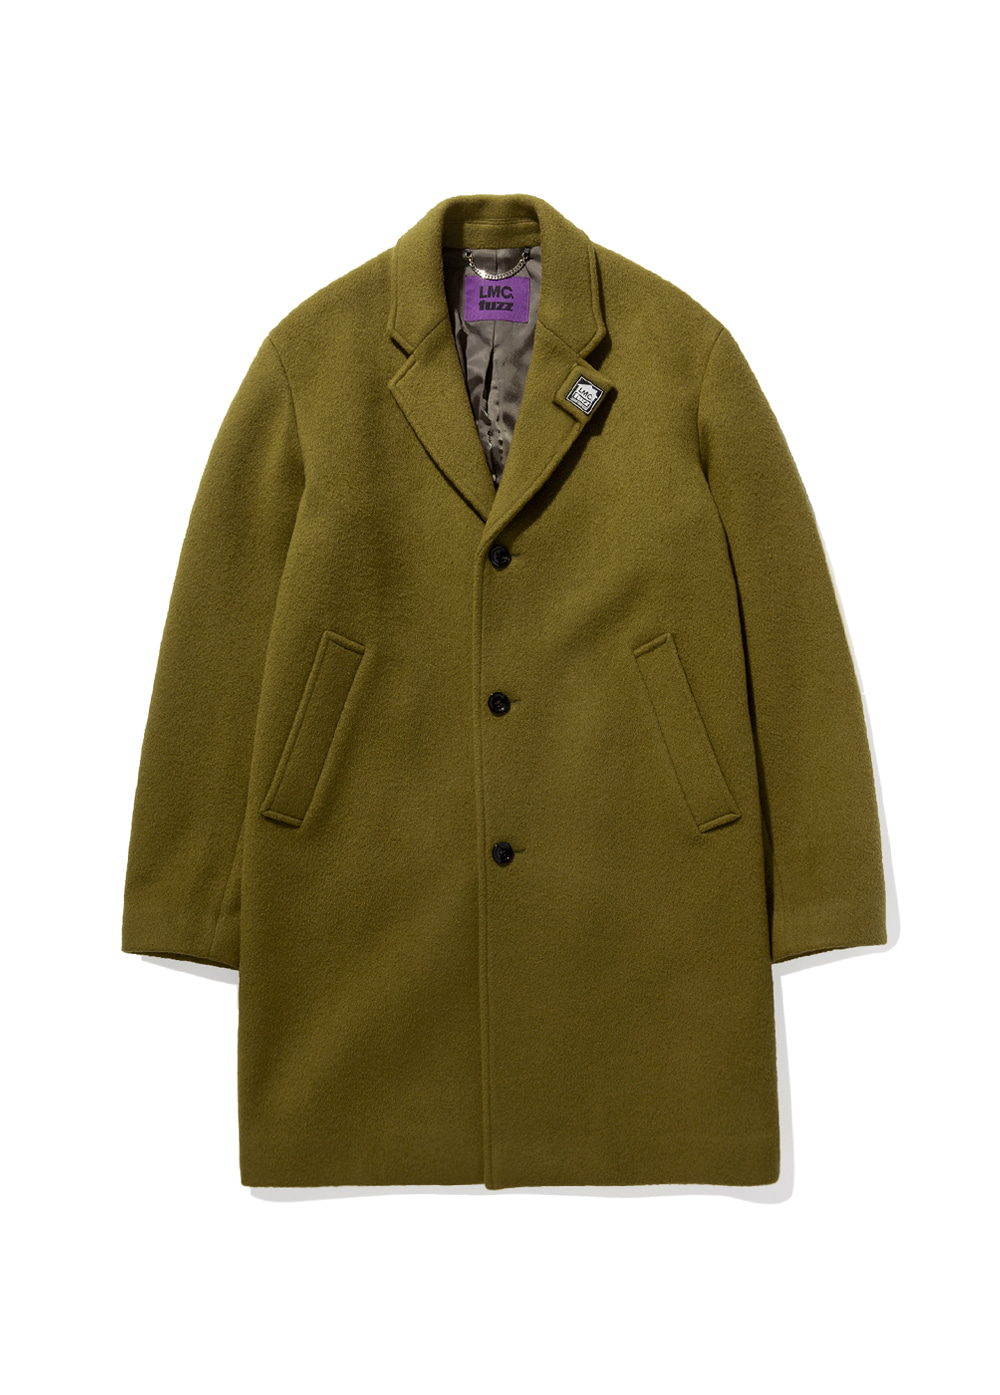 LMC x FUZZ HOUSE SINGLE COAT olive